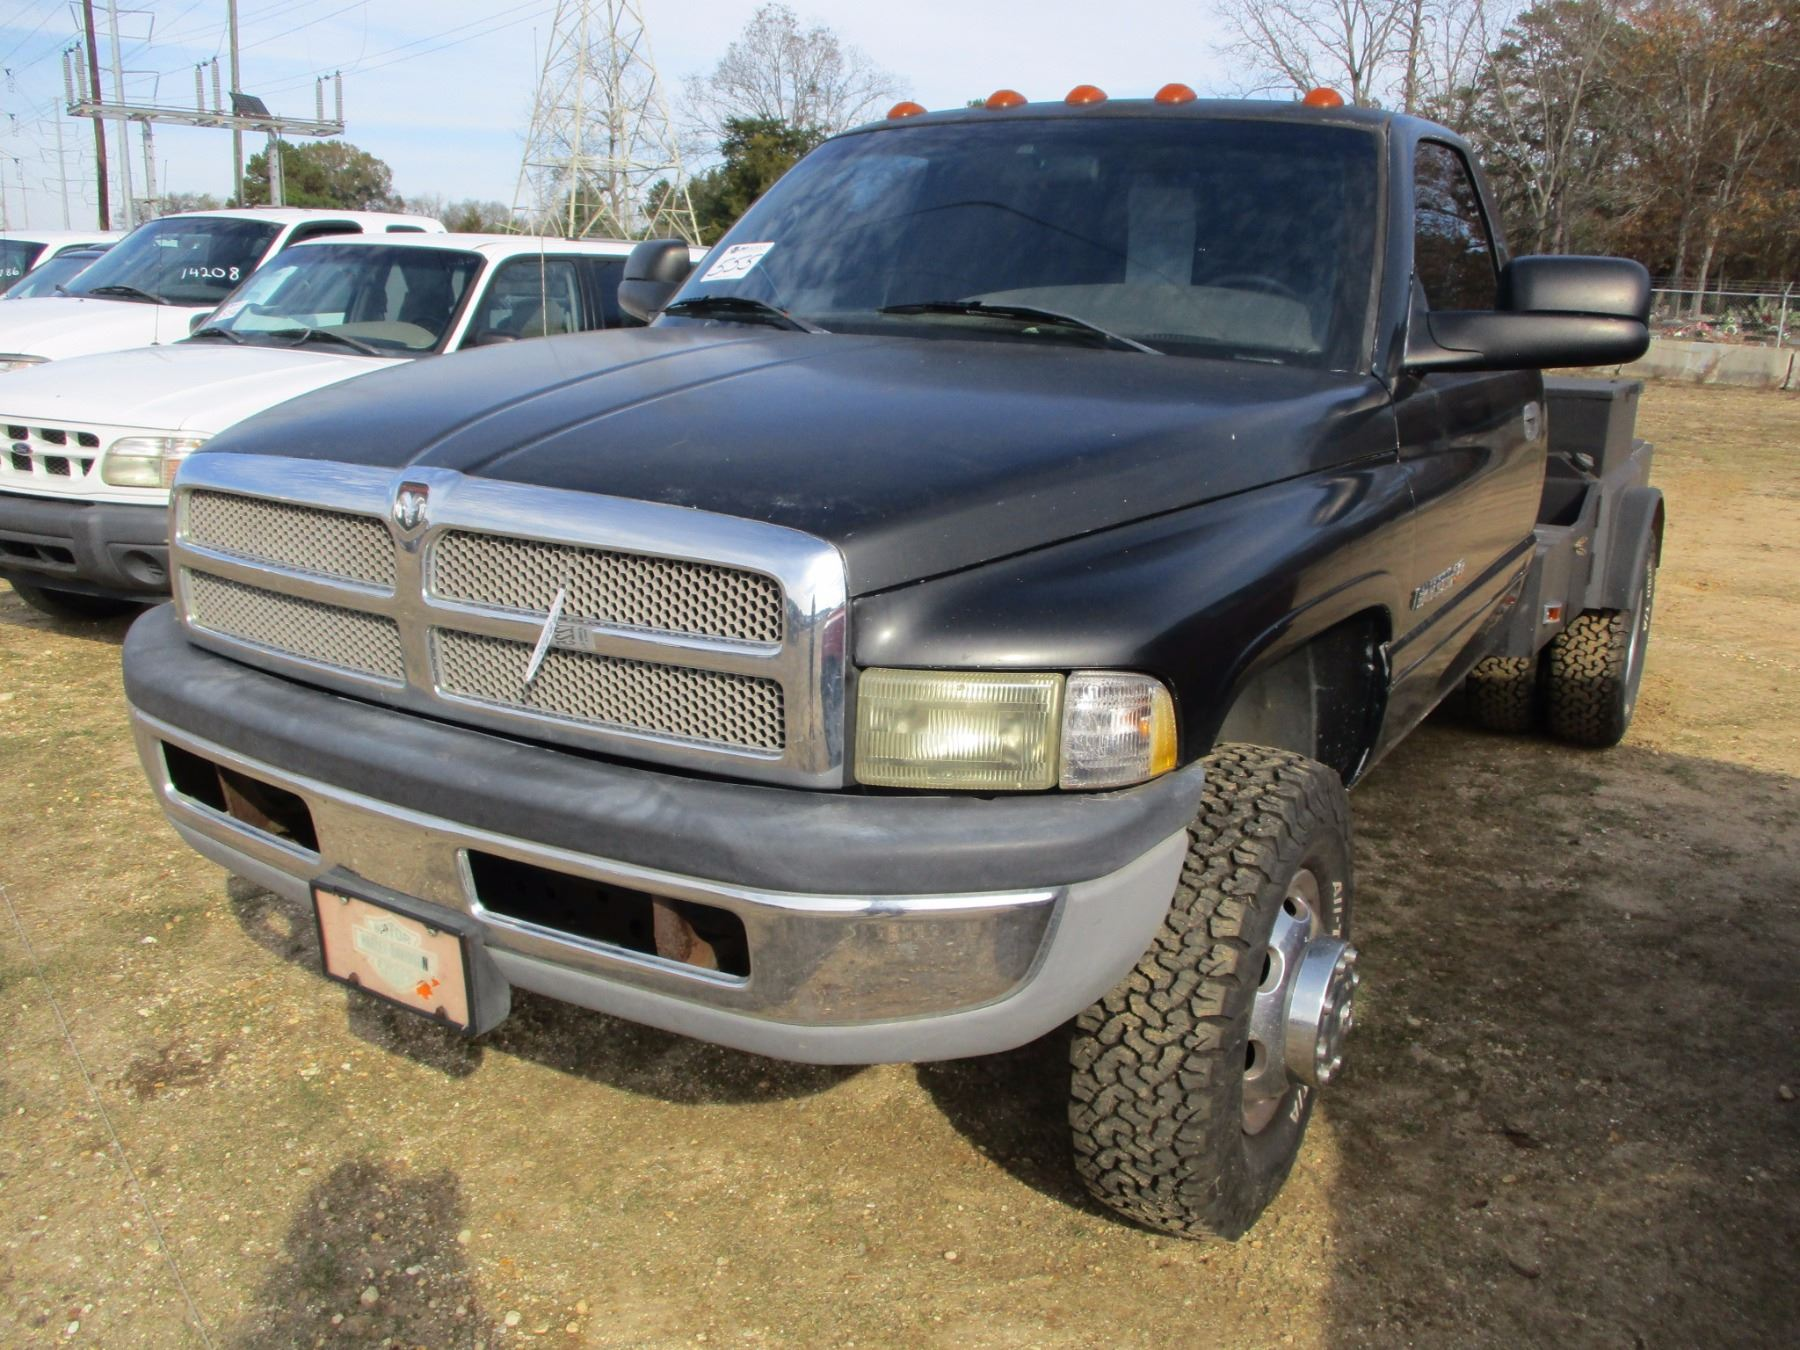 2001 Dodge Ram 3500 Dually Flatbed Truck Vin Sn 3b6mc36591m561197 V8 Magnum Gas Engine Auto Tran